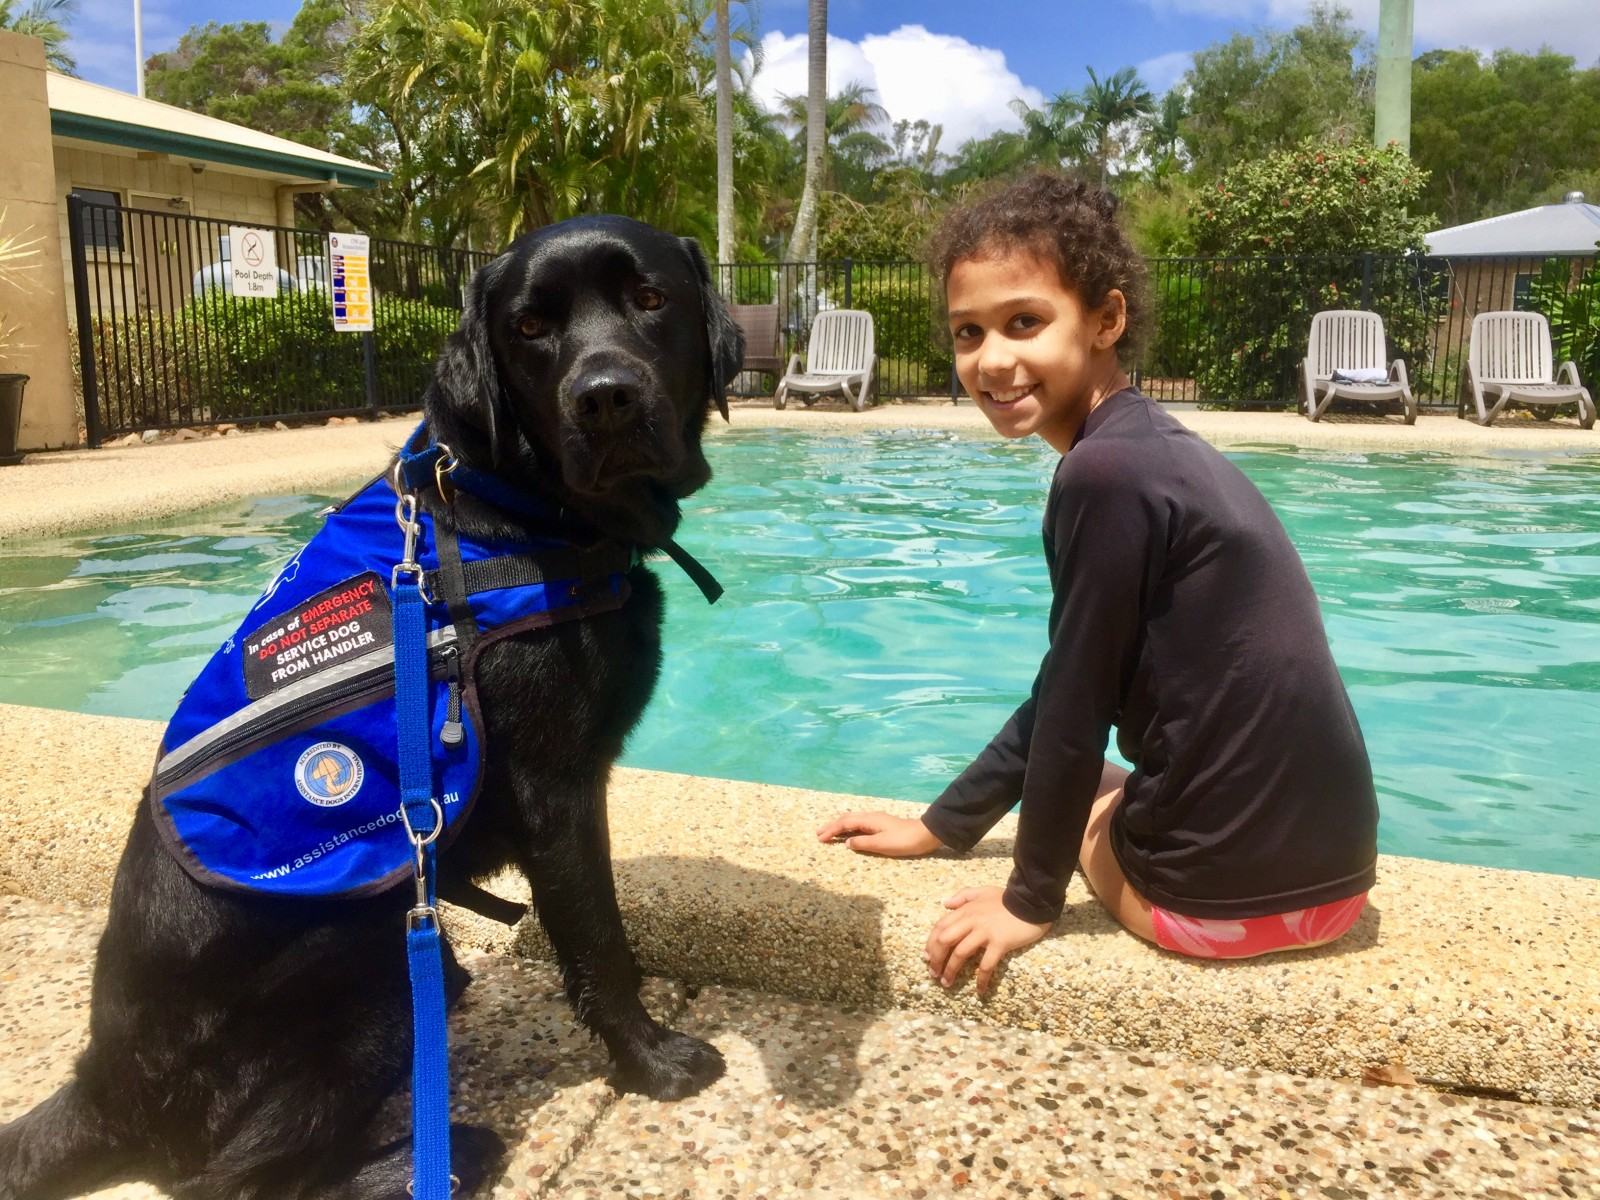 Amigo the Autism Service Dog and Armani